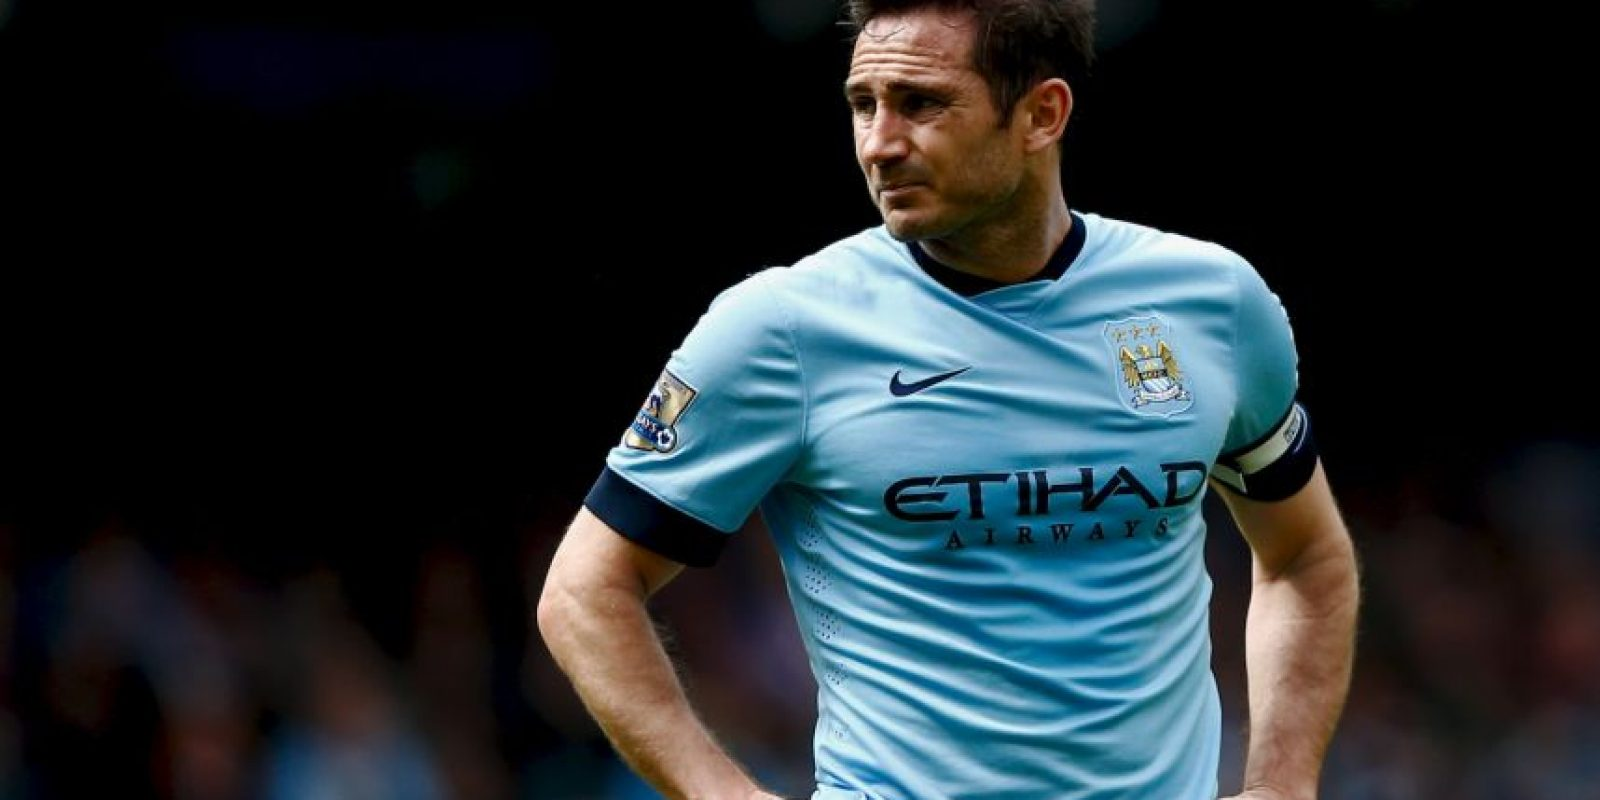 5. Frank Lampard Foto:Getty Images